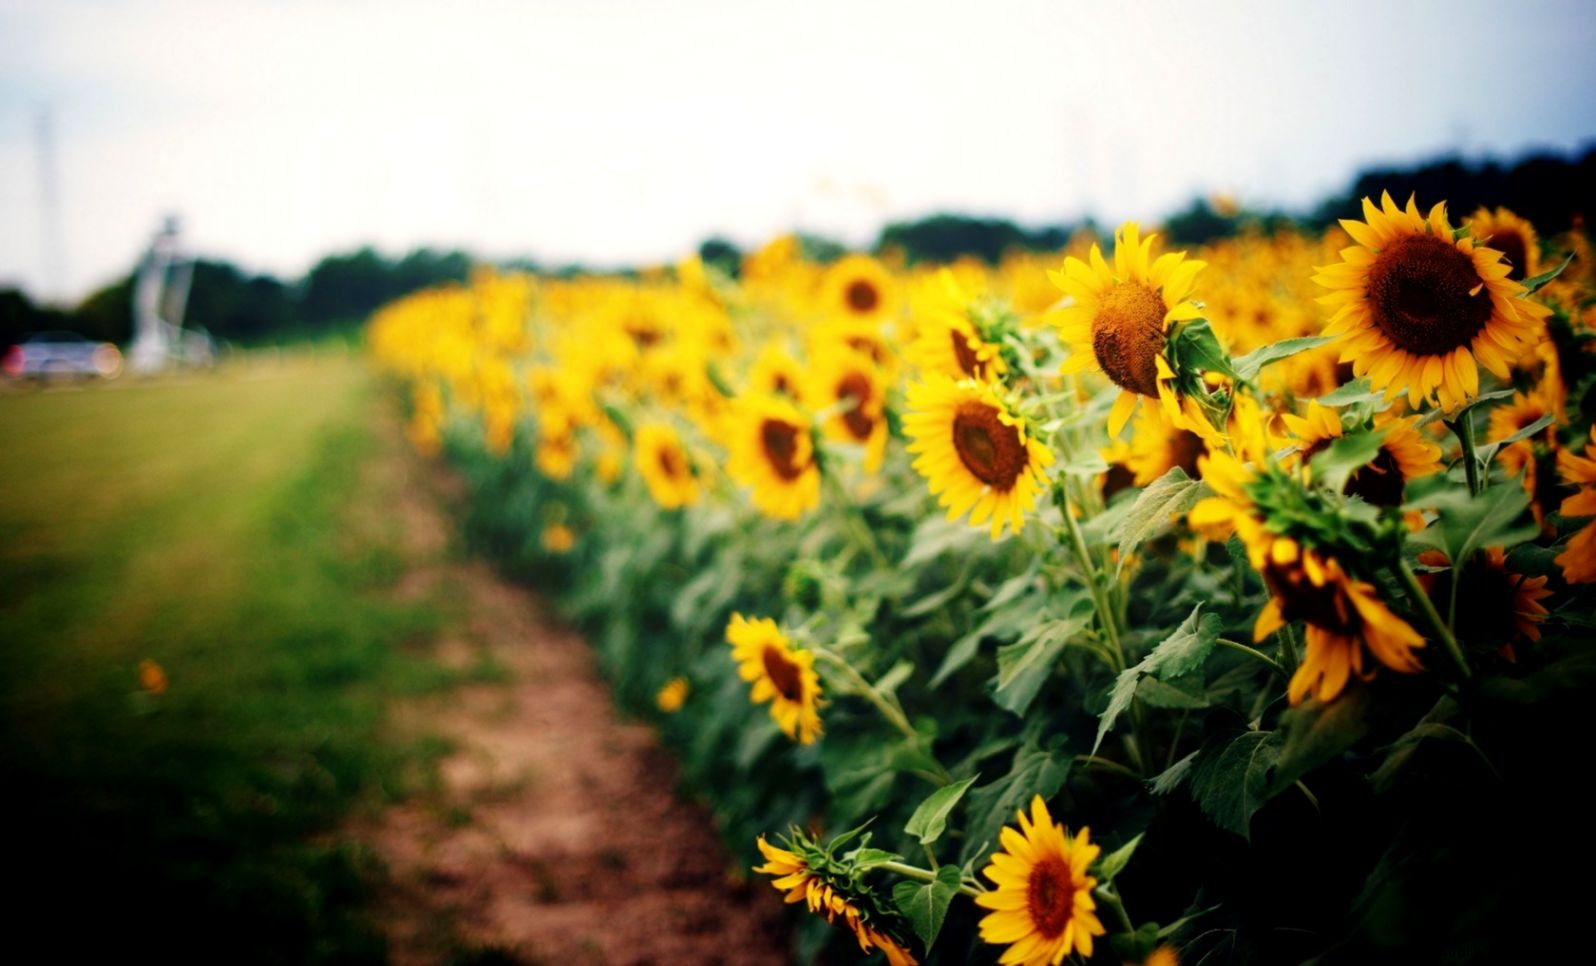 Best Nature Sunflowers Hd Wallpaper Wallpapers Quality